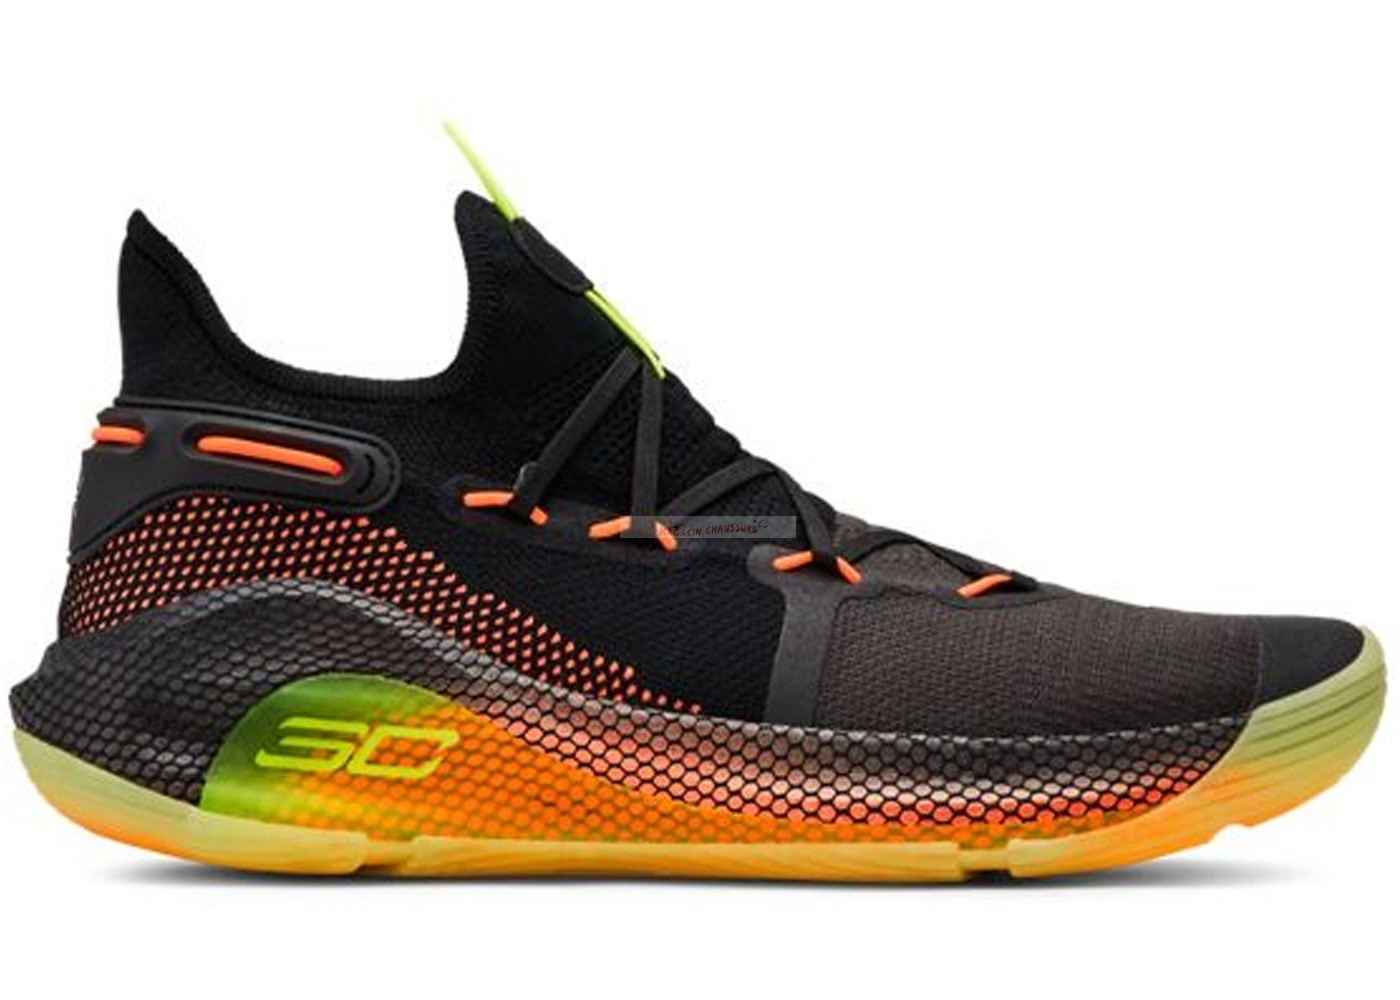 "Under Armour Curry 6 ""Fox Theatre"" Noir Jaune (3020612-004) Chaussure de Basket"